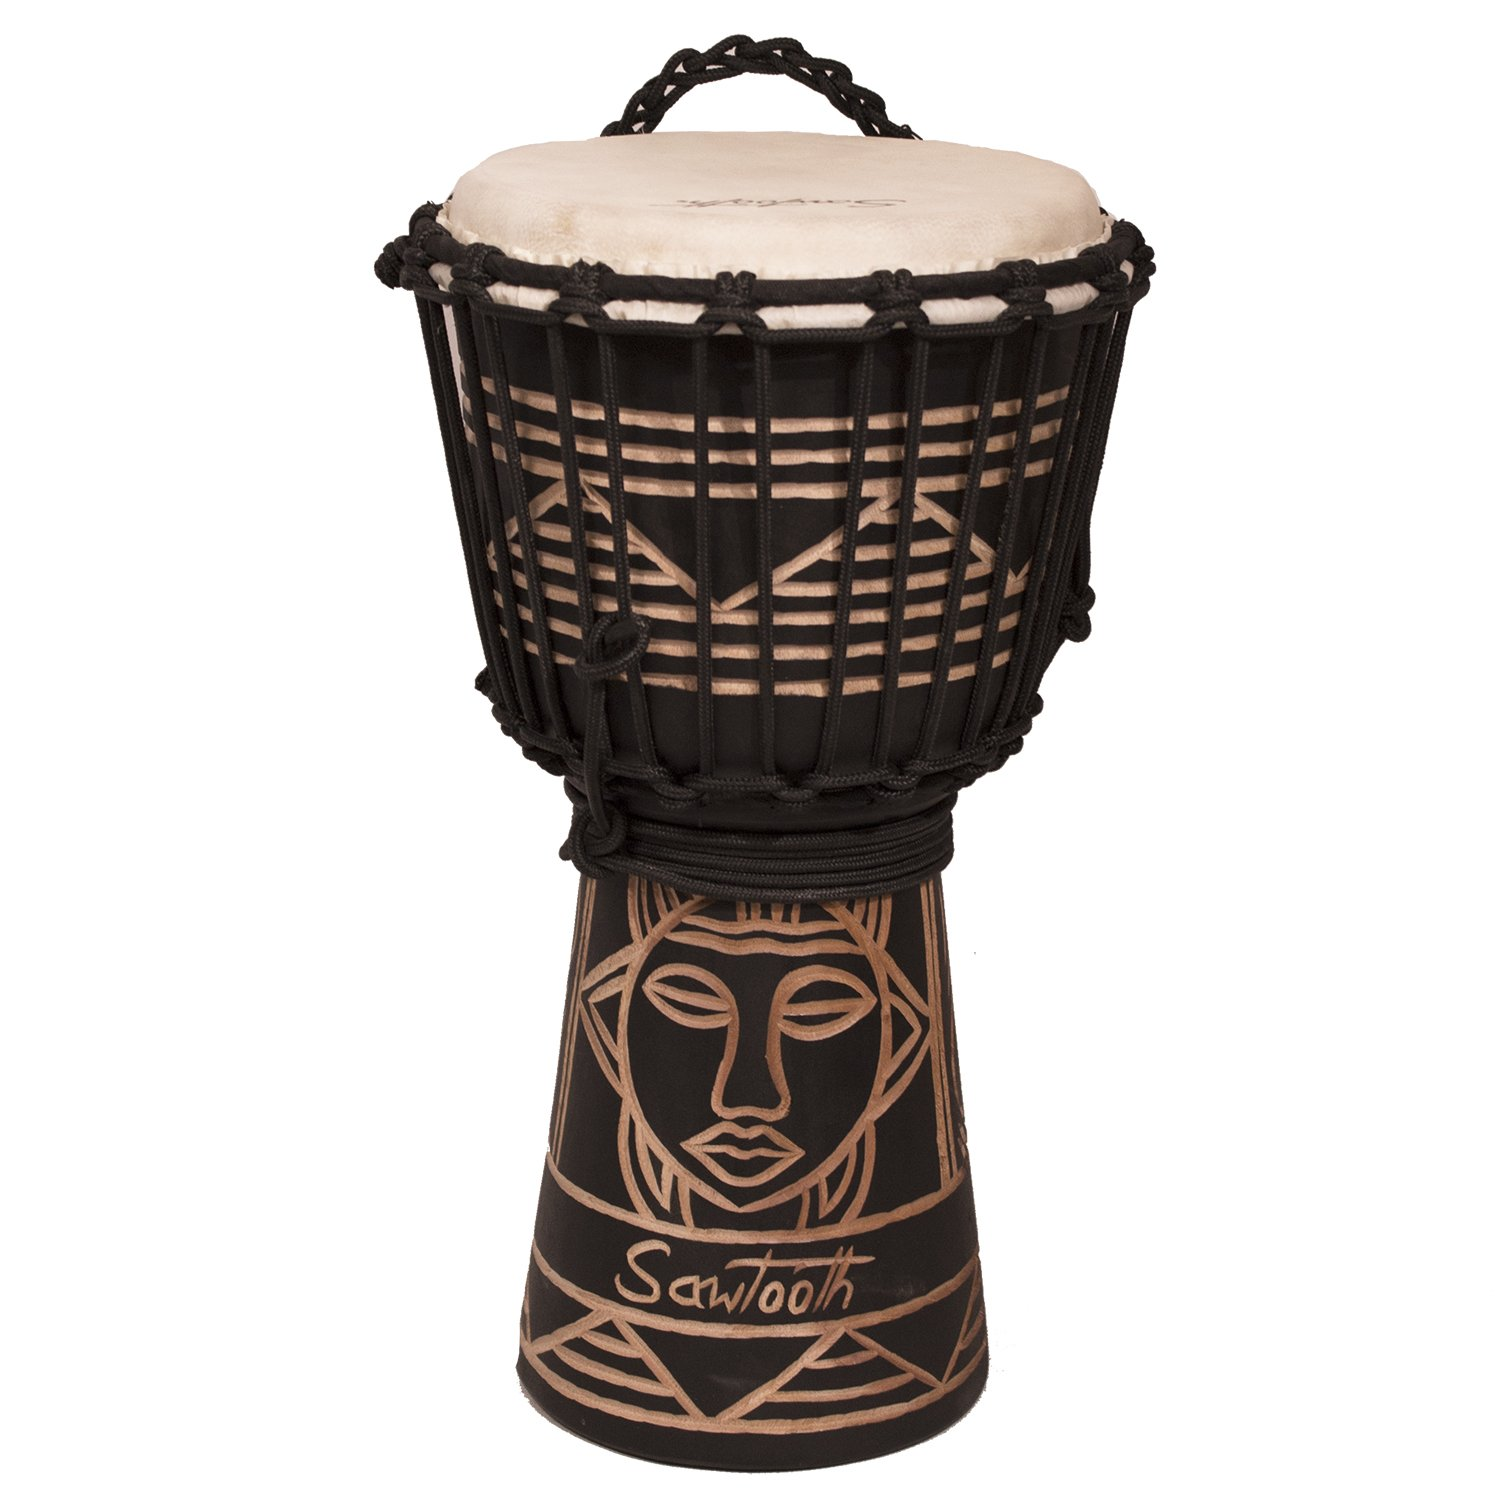 Sawtooth Harmony Series 8'' Hand Carved Spirit Design Rope Djembe, Satin Black Finish